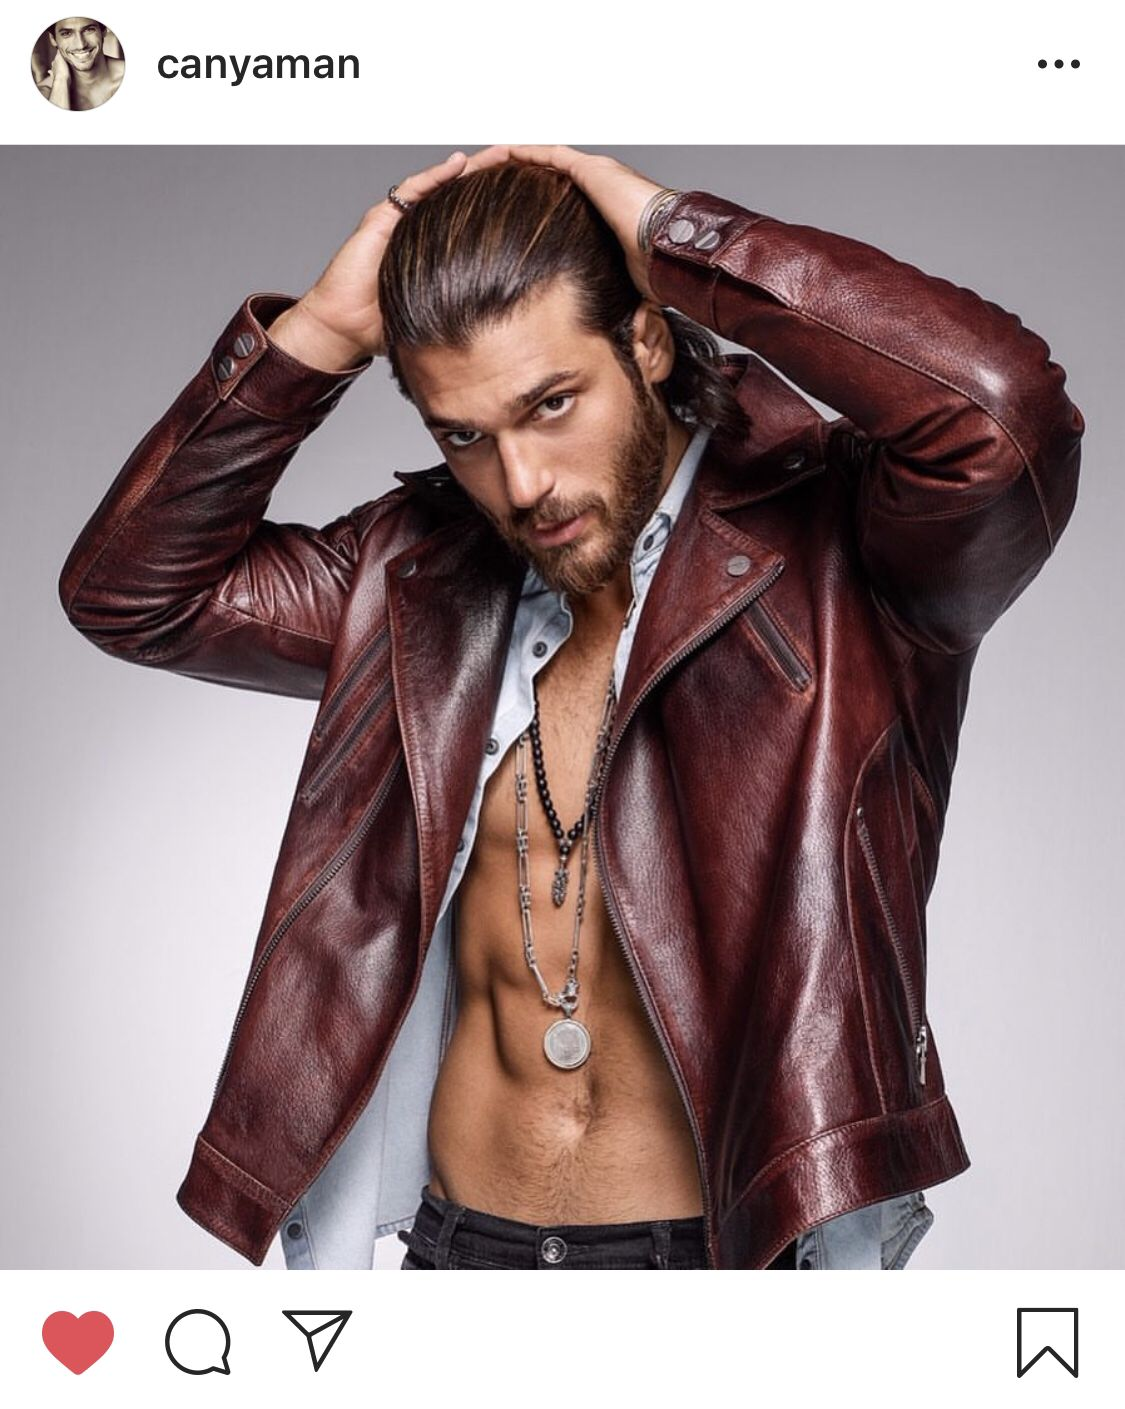 Pin By Emanuela Pasqualetti On Inadina Ask Long Hair Styles Men Leather Jacket Leather Jacket Men [ 1409 x 1125 Pixel ]